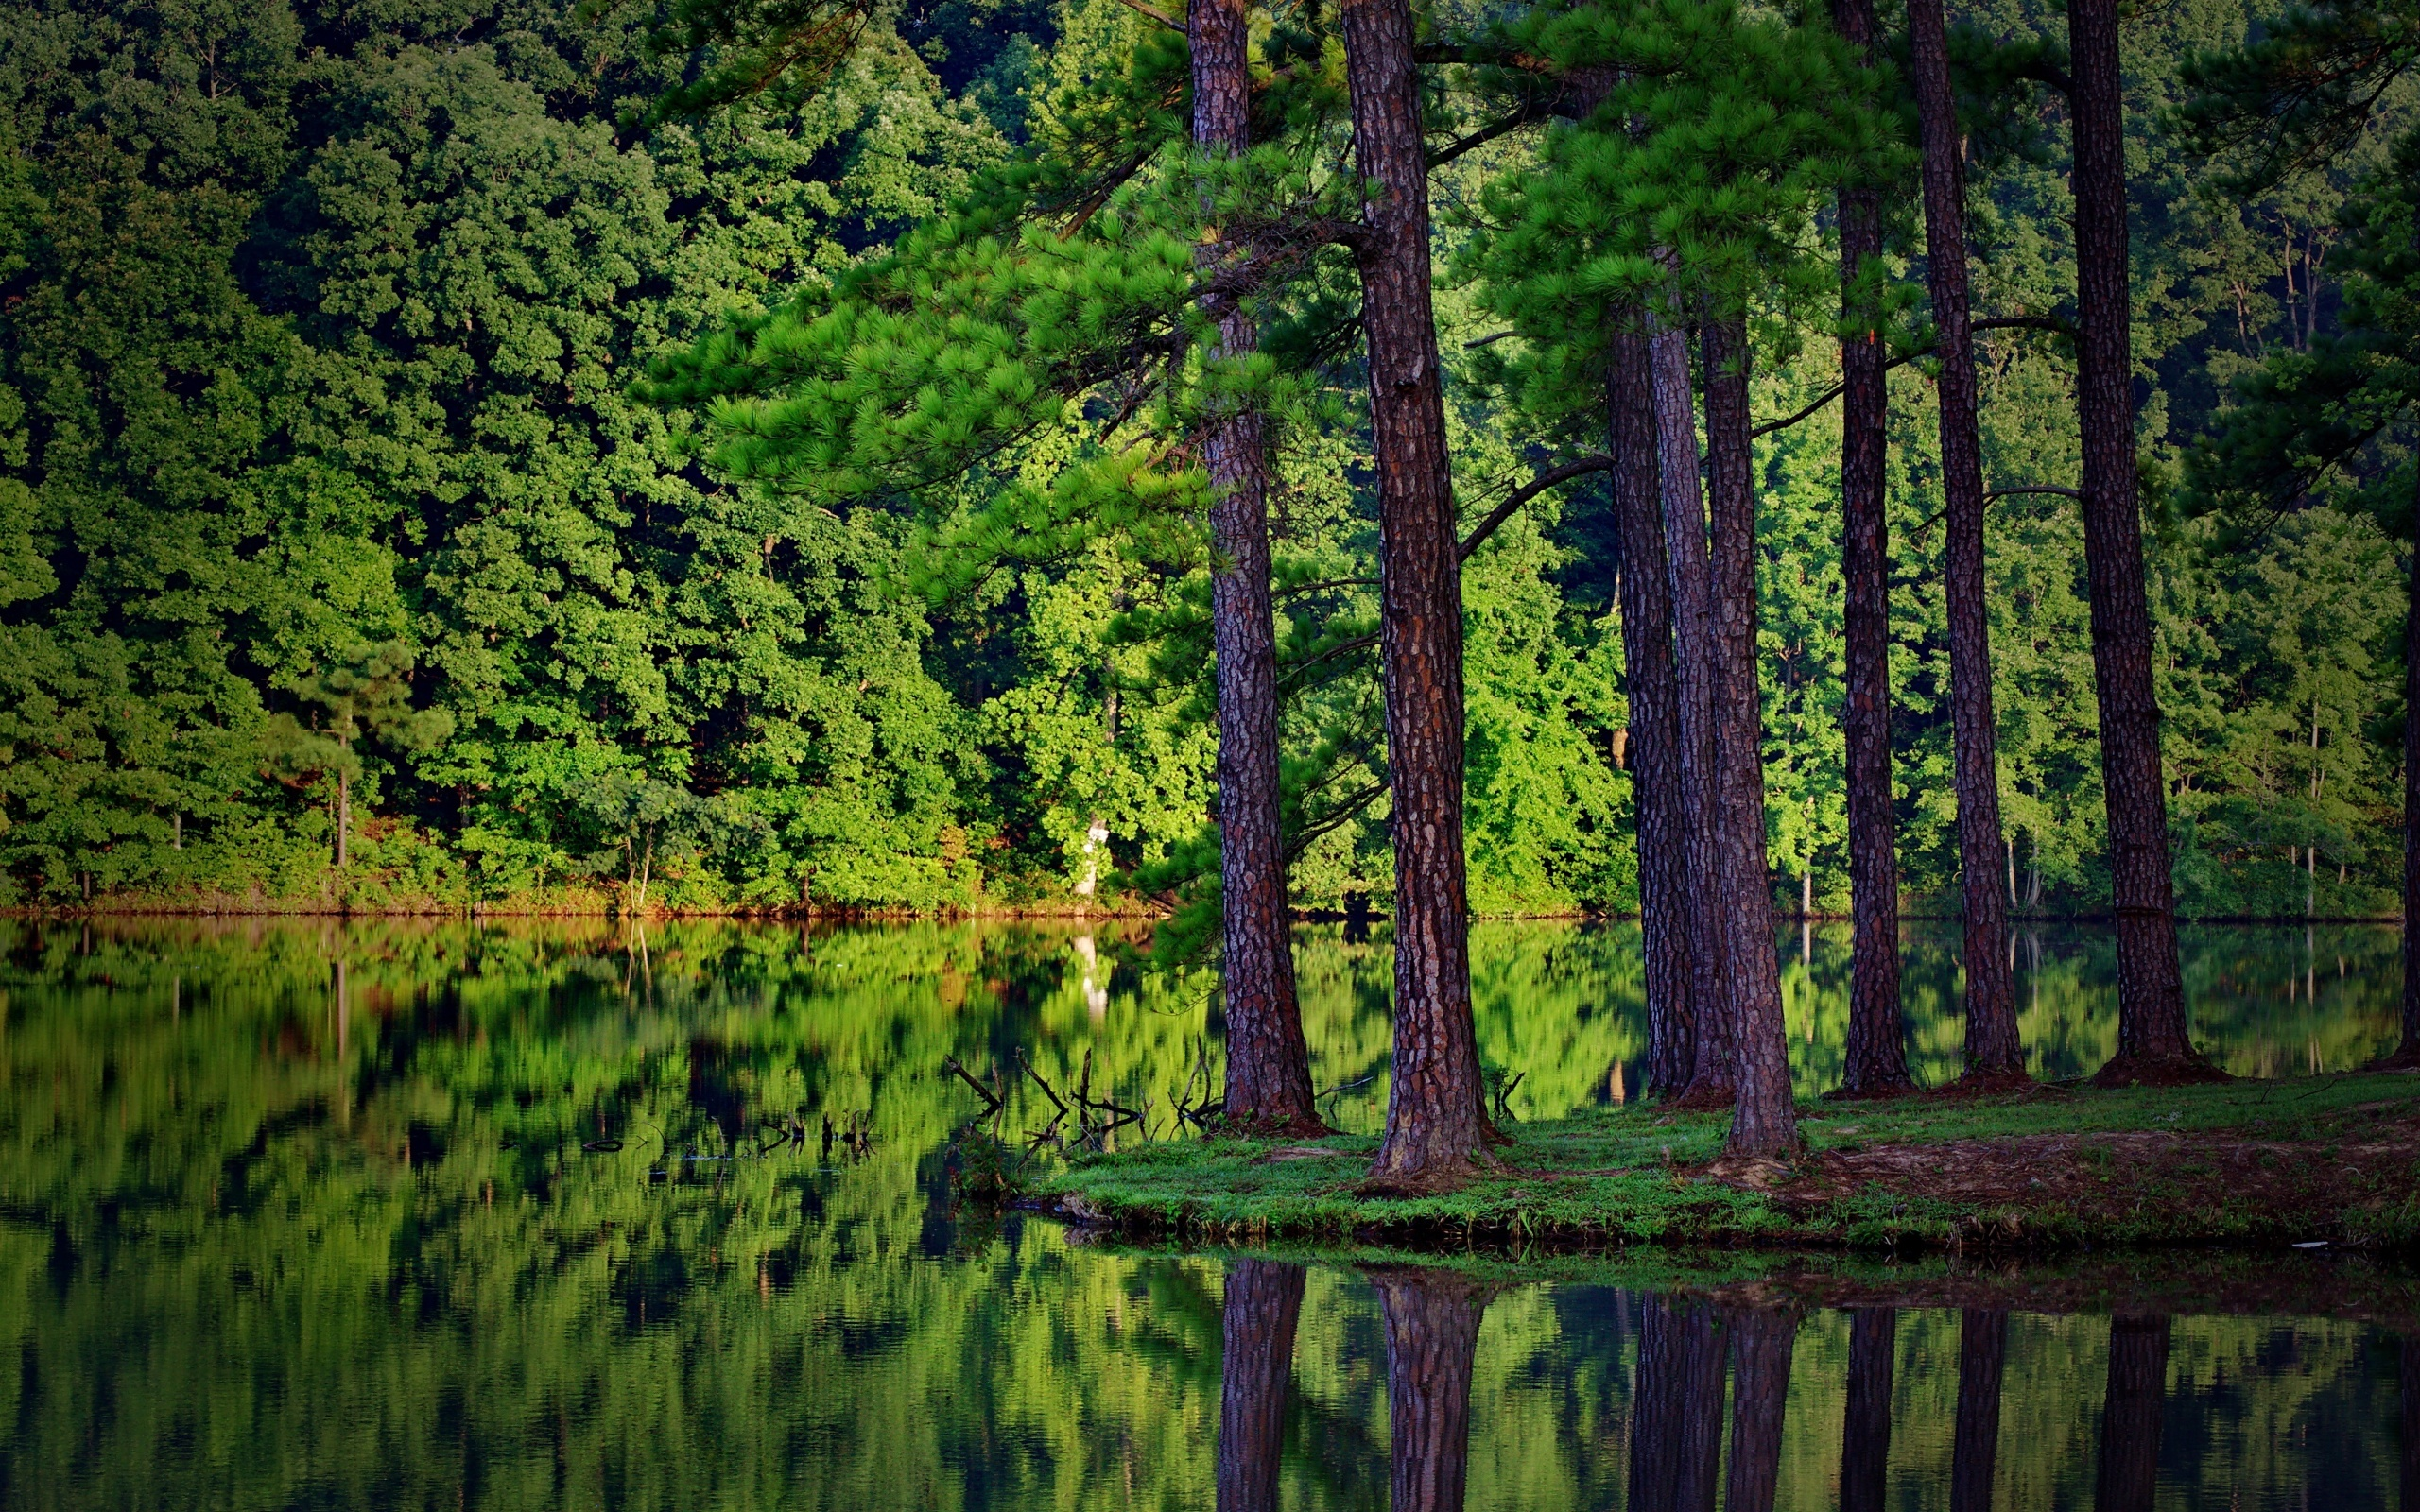 Nature, forest, spruce, river, reflection in water